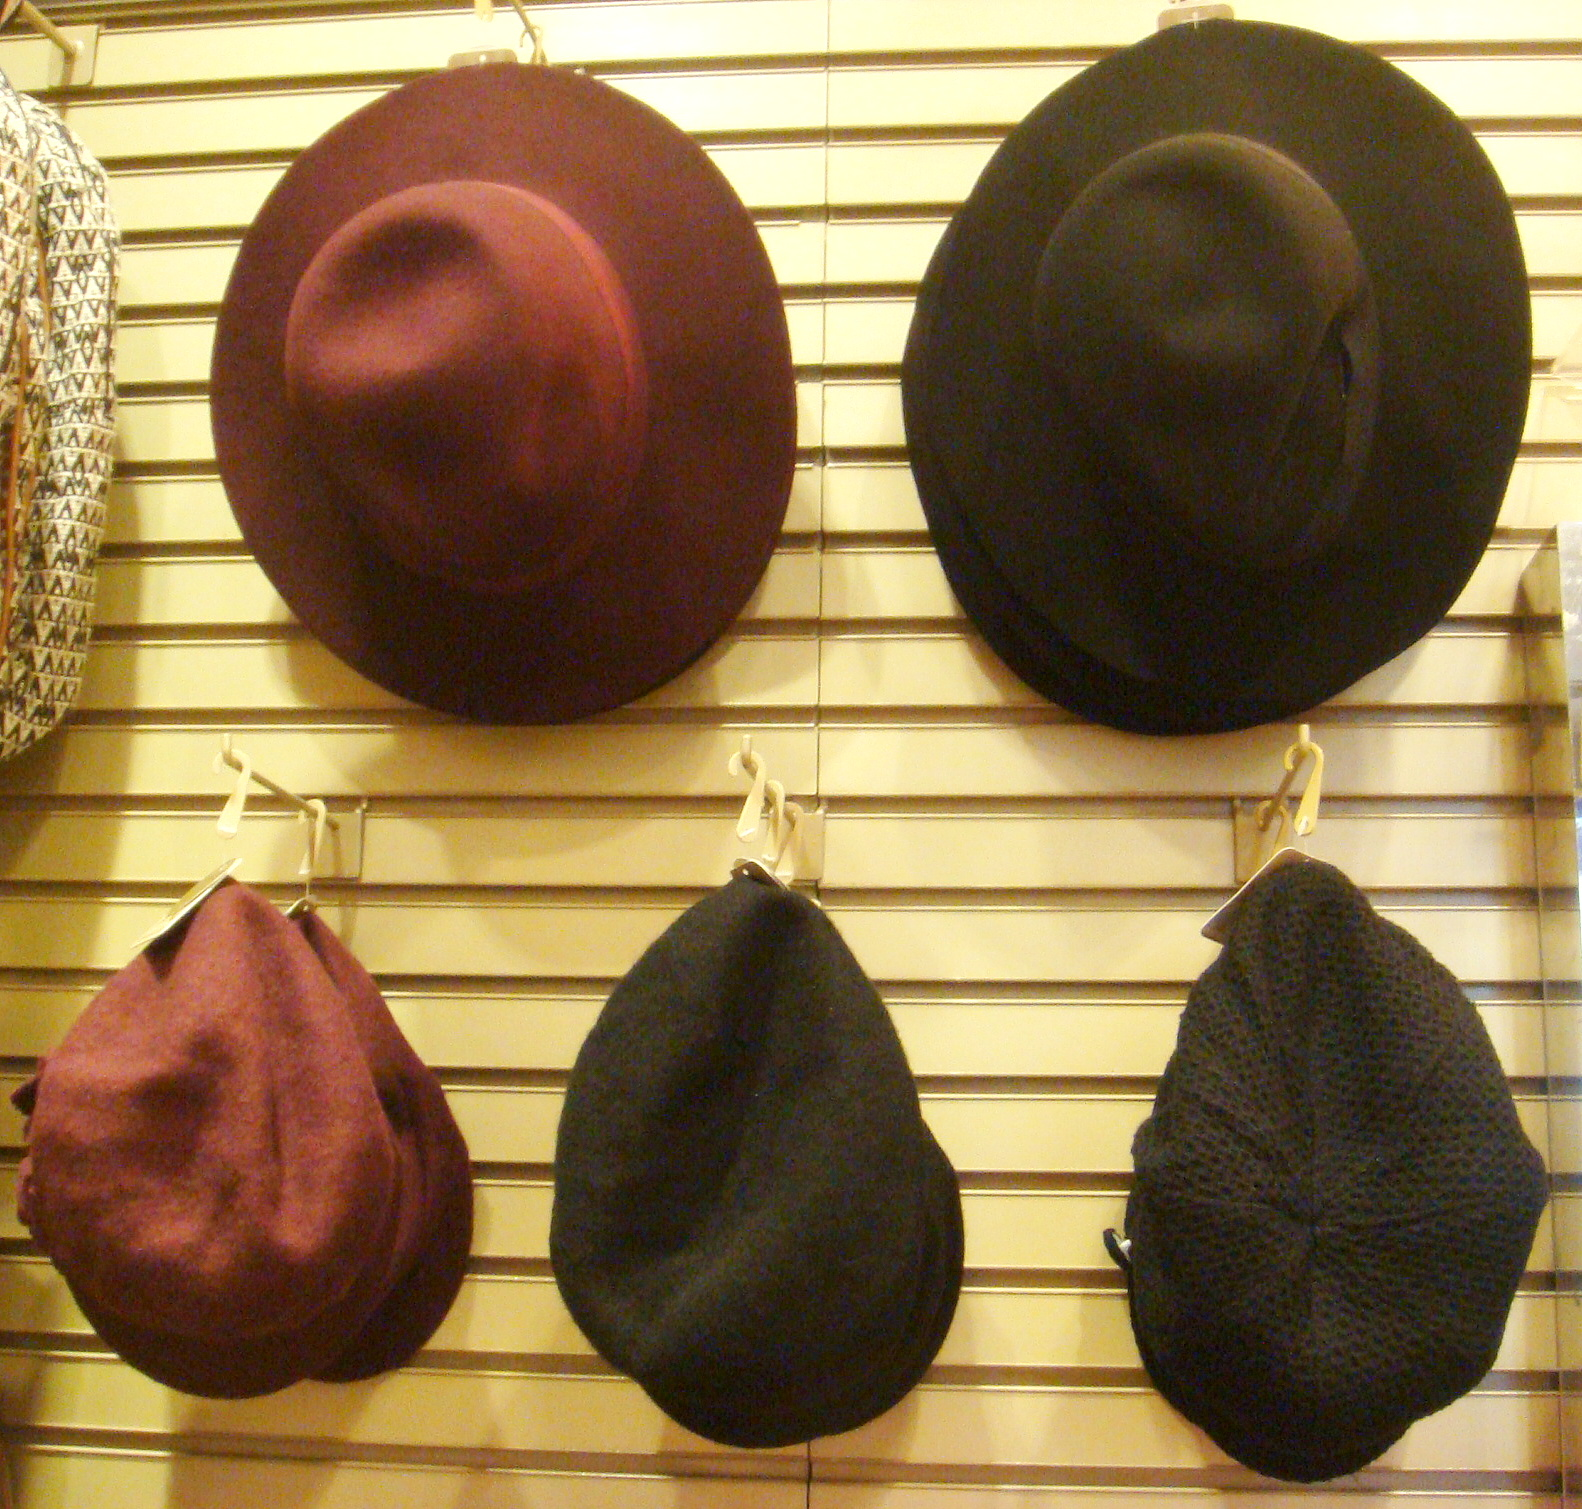 Accesorize hats